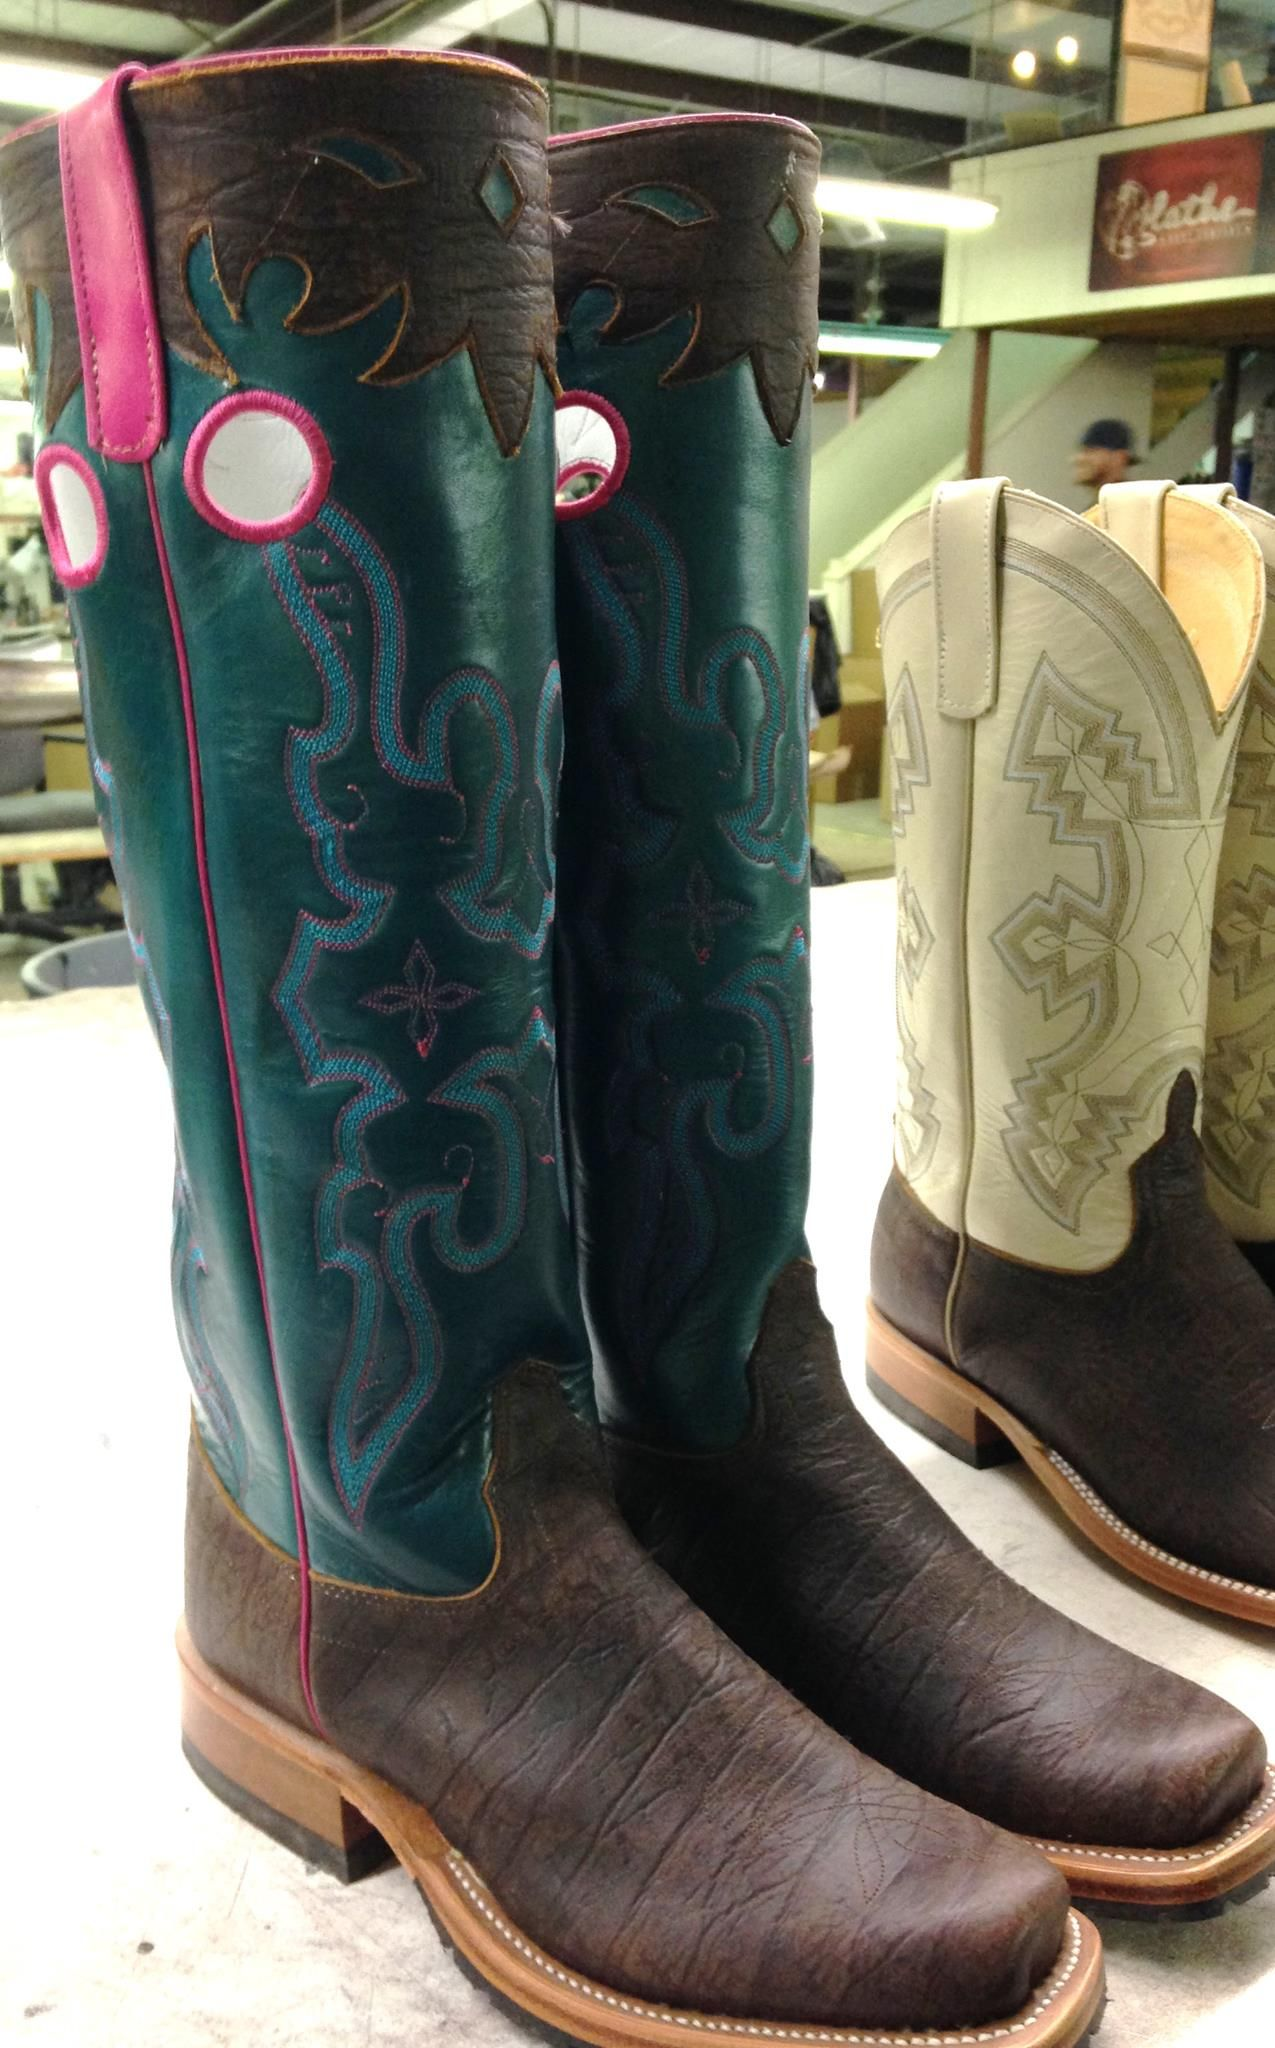 Cowboy boots coloring pages - Coloring Pages & Pictures ...  |Cowboy Boots With Colored Tops